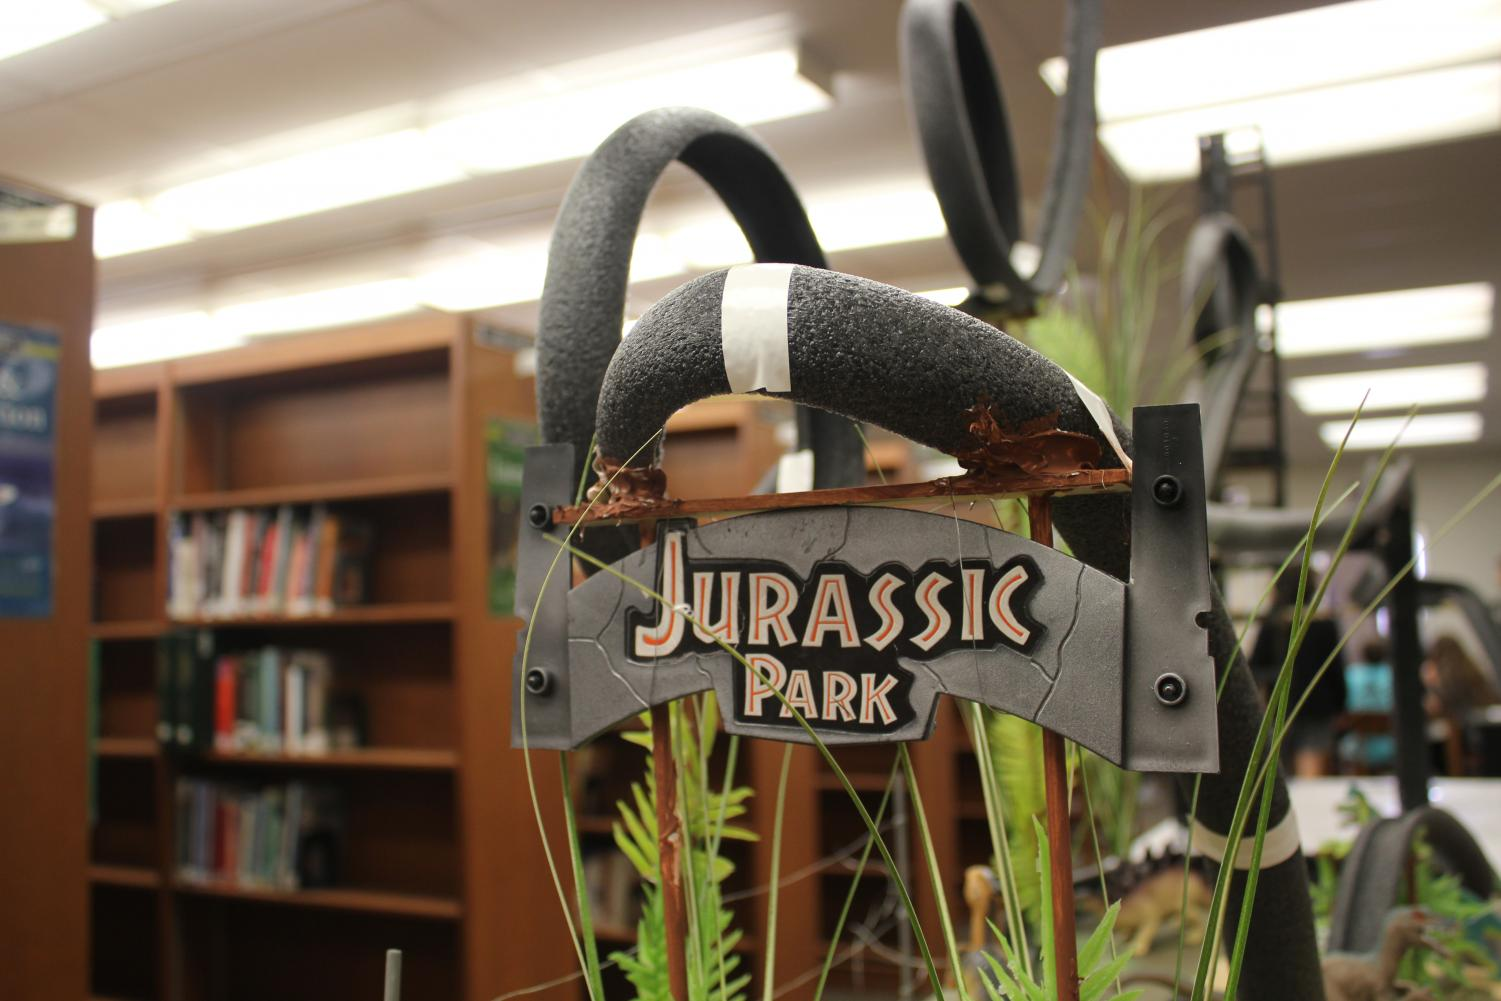 The Jurassic Park sign hangs from the track of an academic physics roller coaster in the library. The coaster had many loops, curves, and inclines included, as students were graded on the features of their coaster.